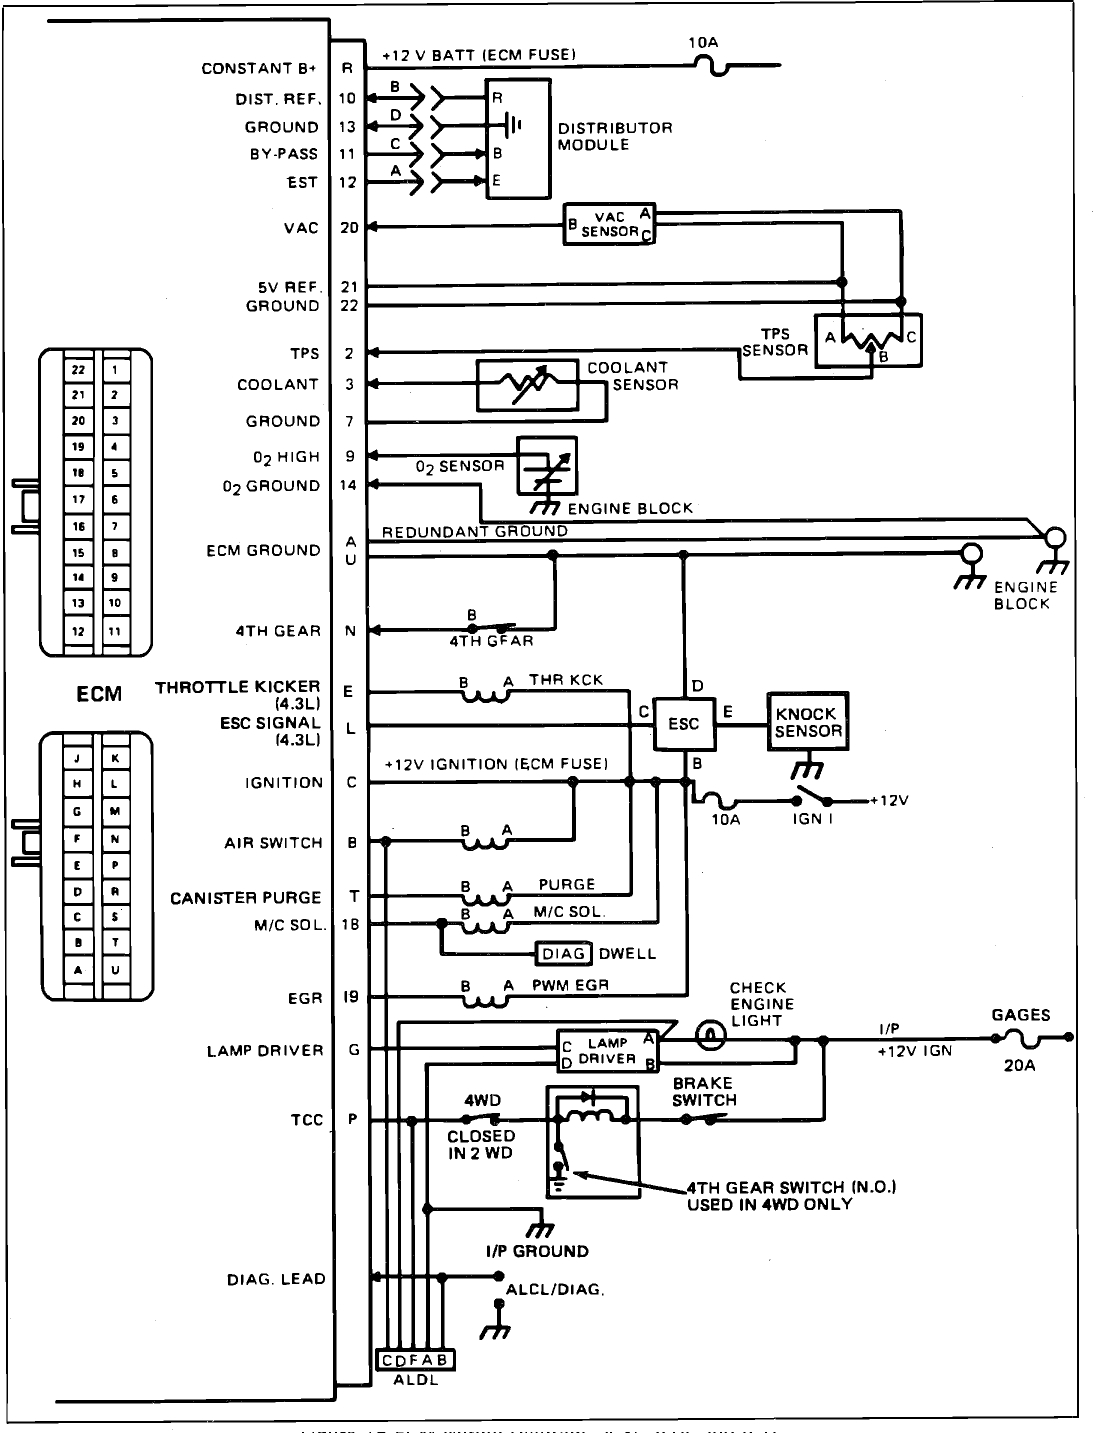 1991 chevy camaro fuse diagram 2004 ford ranger engine 1999 ecm wiring